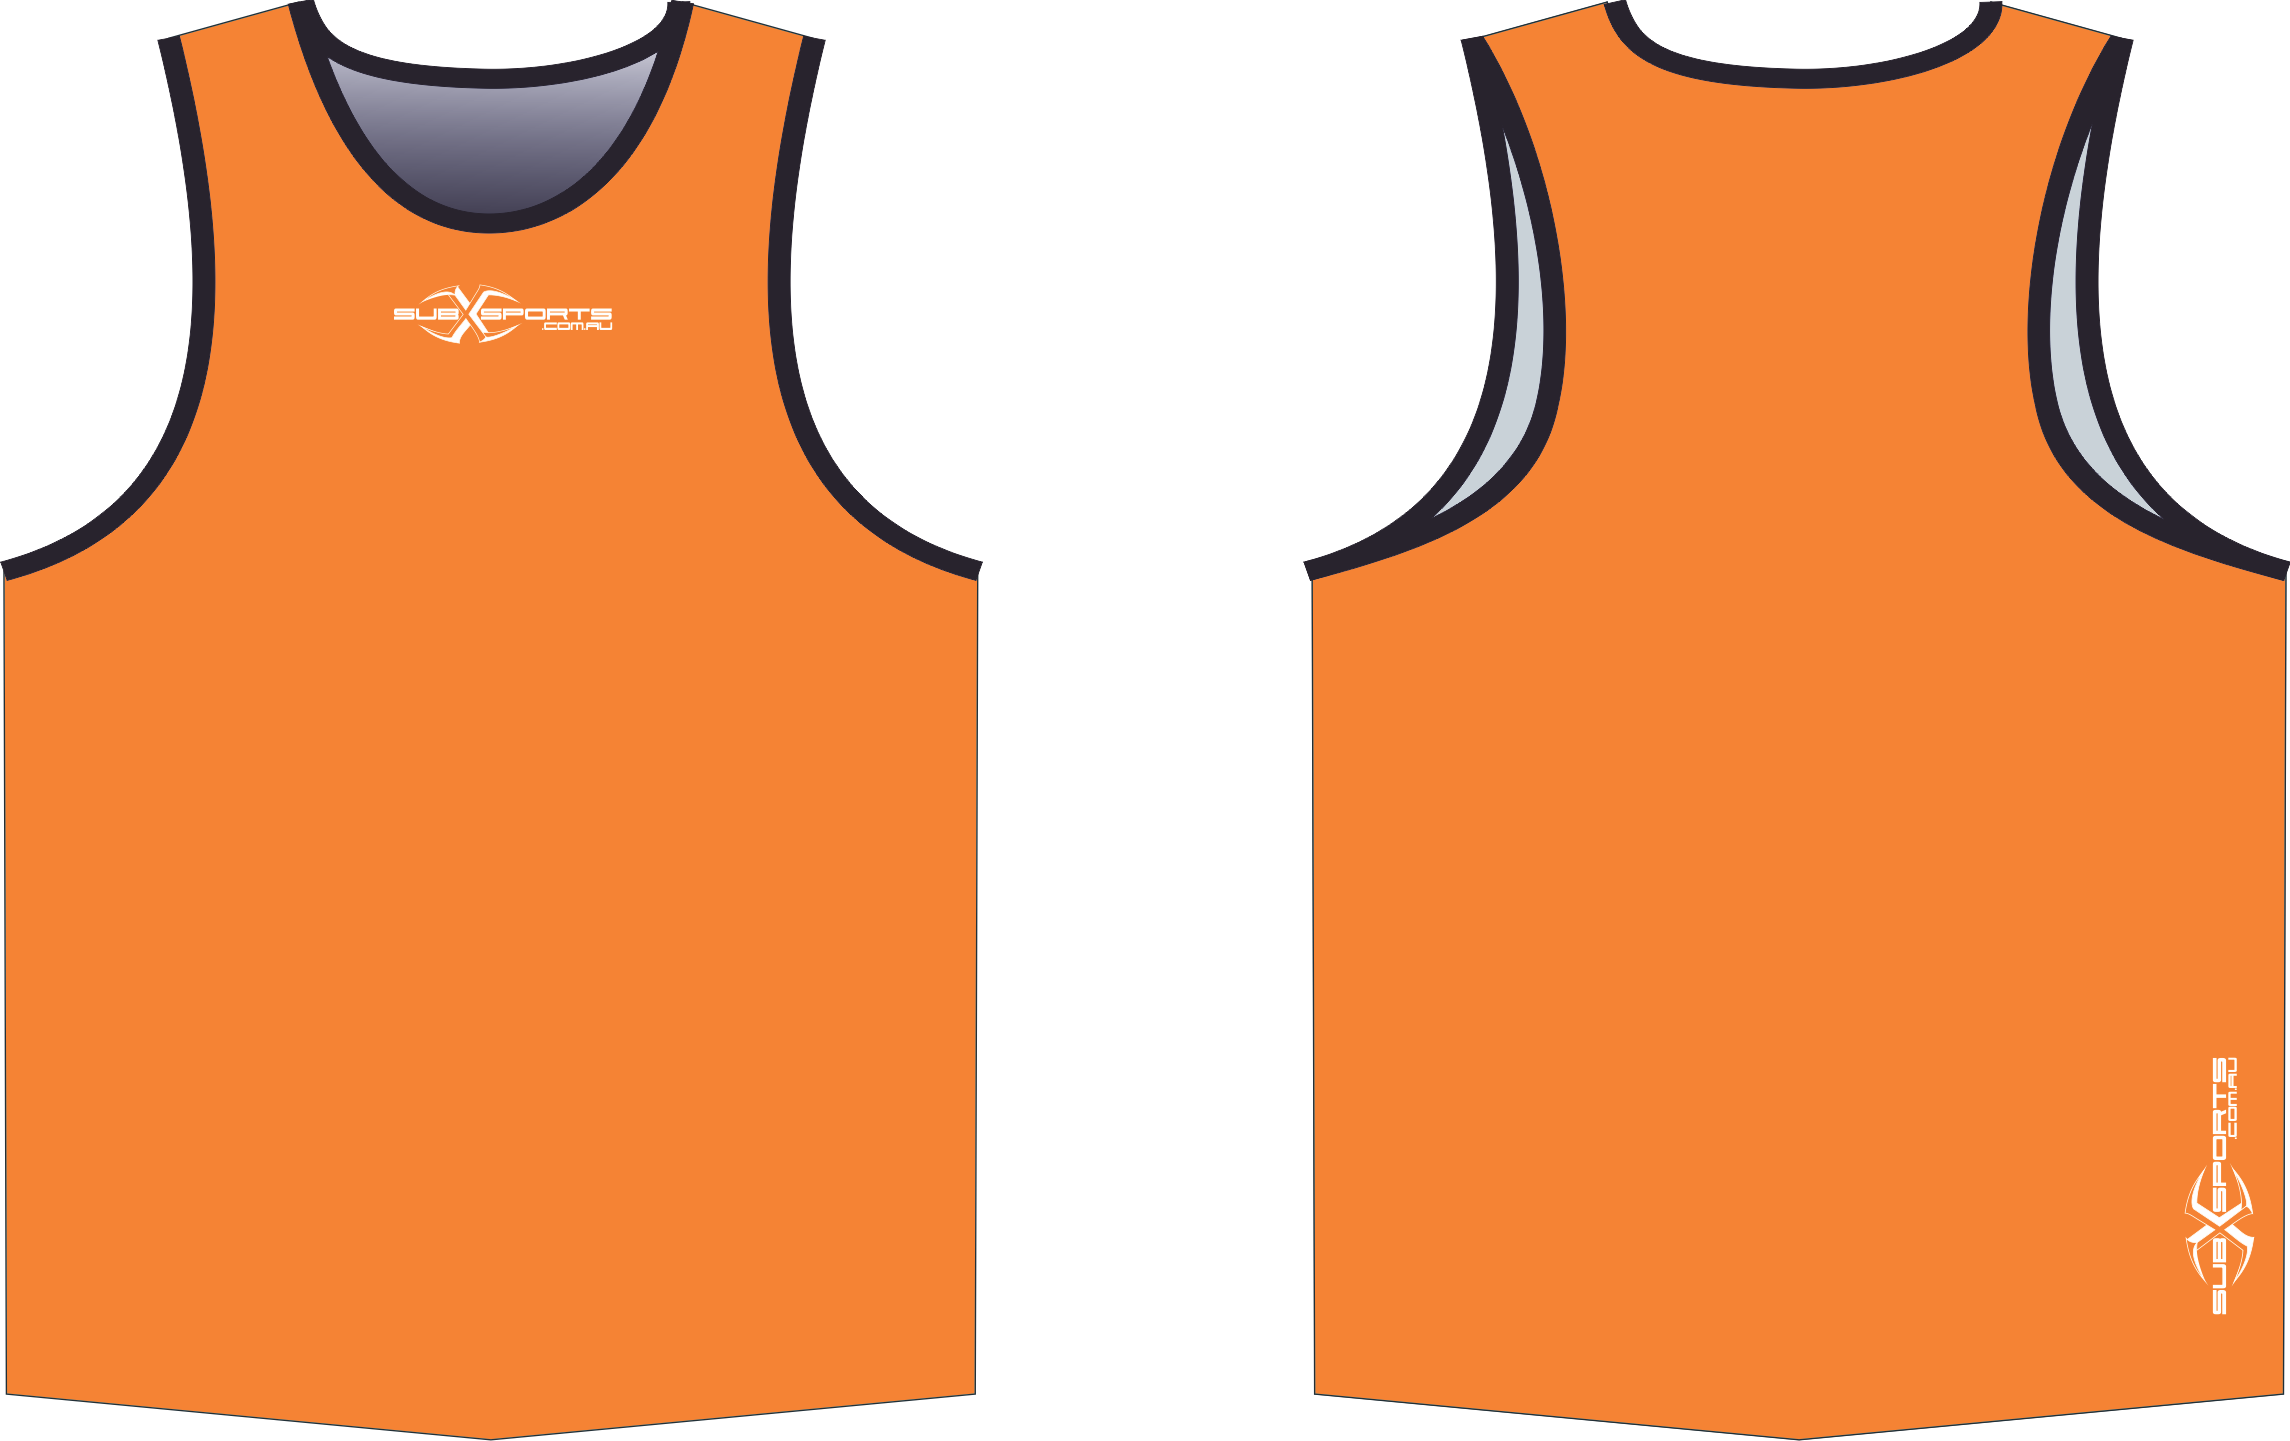 S206XS Singlet Orange Black.png